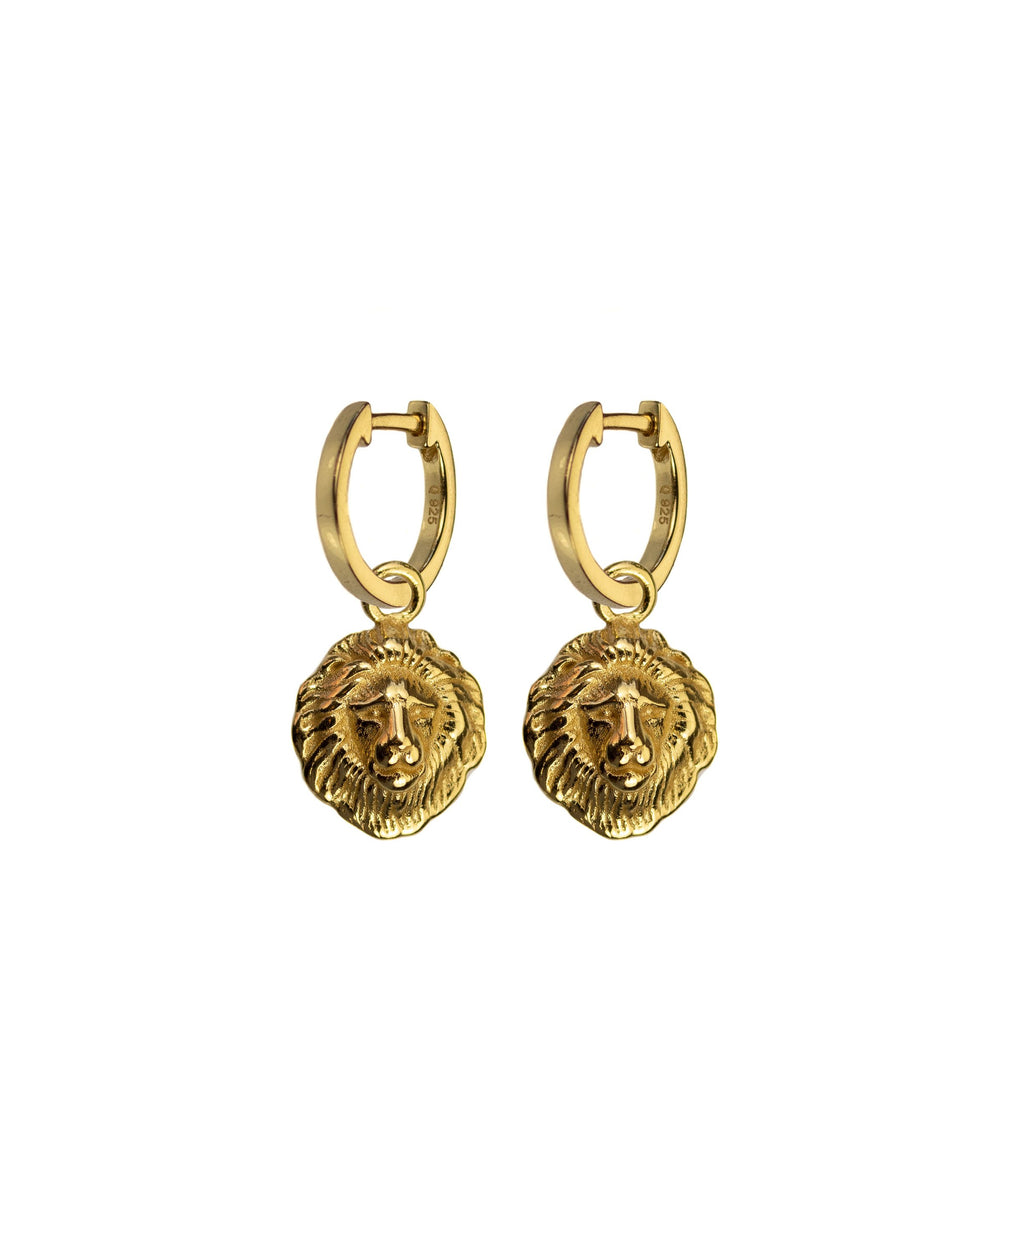 Lions Head Earrings